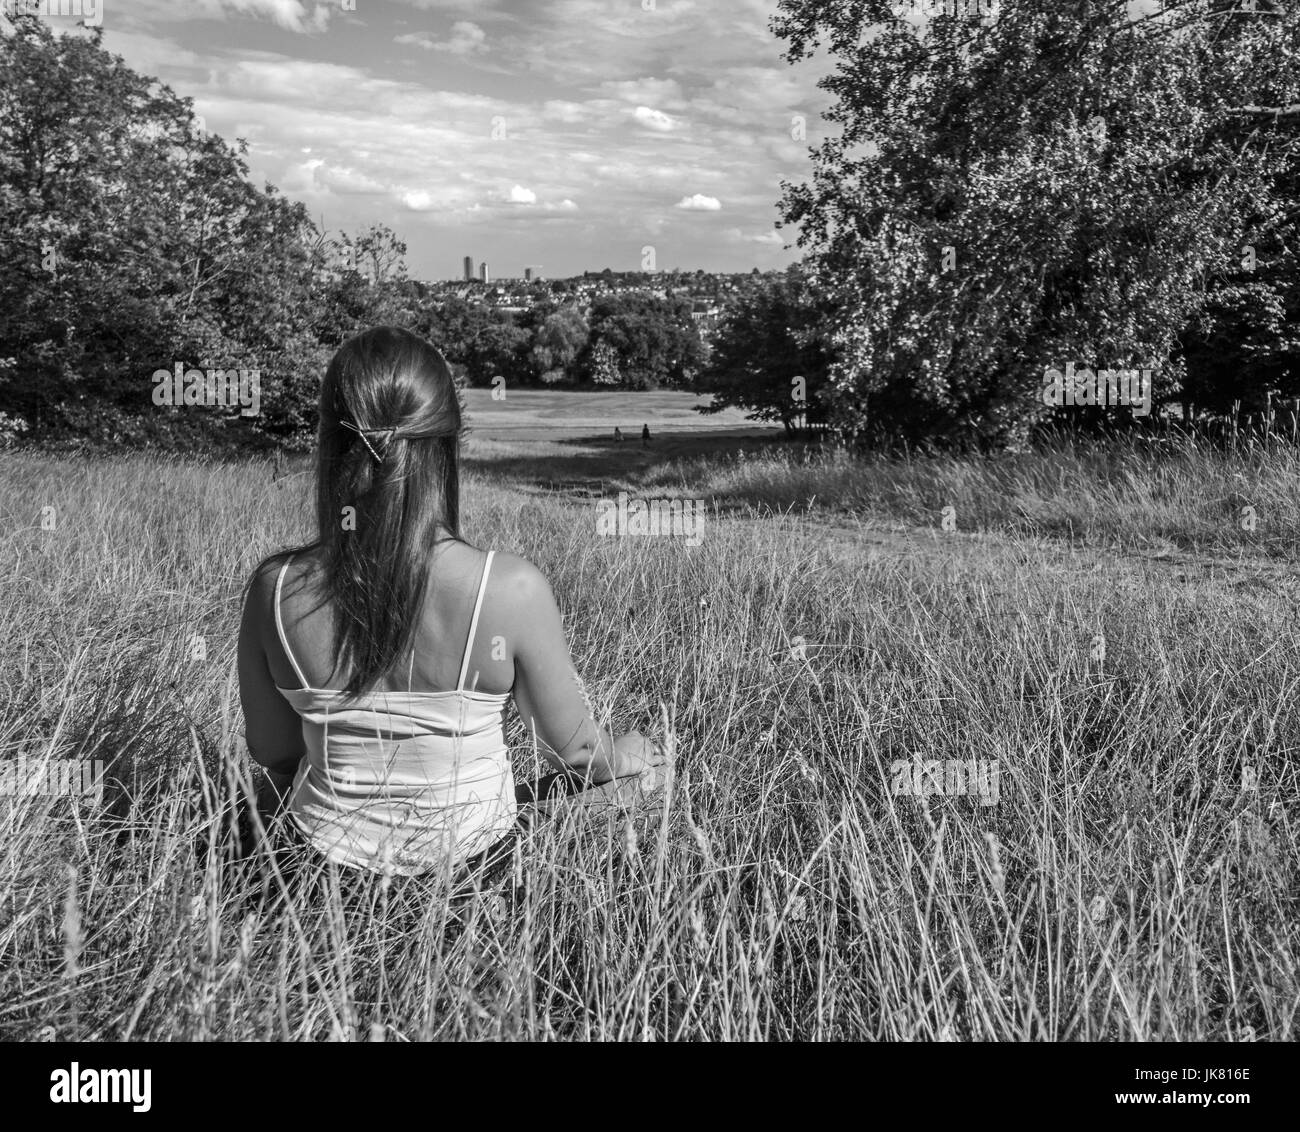 Young woman sitting meditating in grass looking toward a city - Stock Image